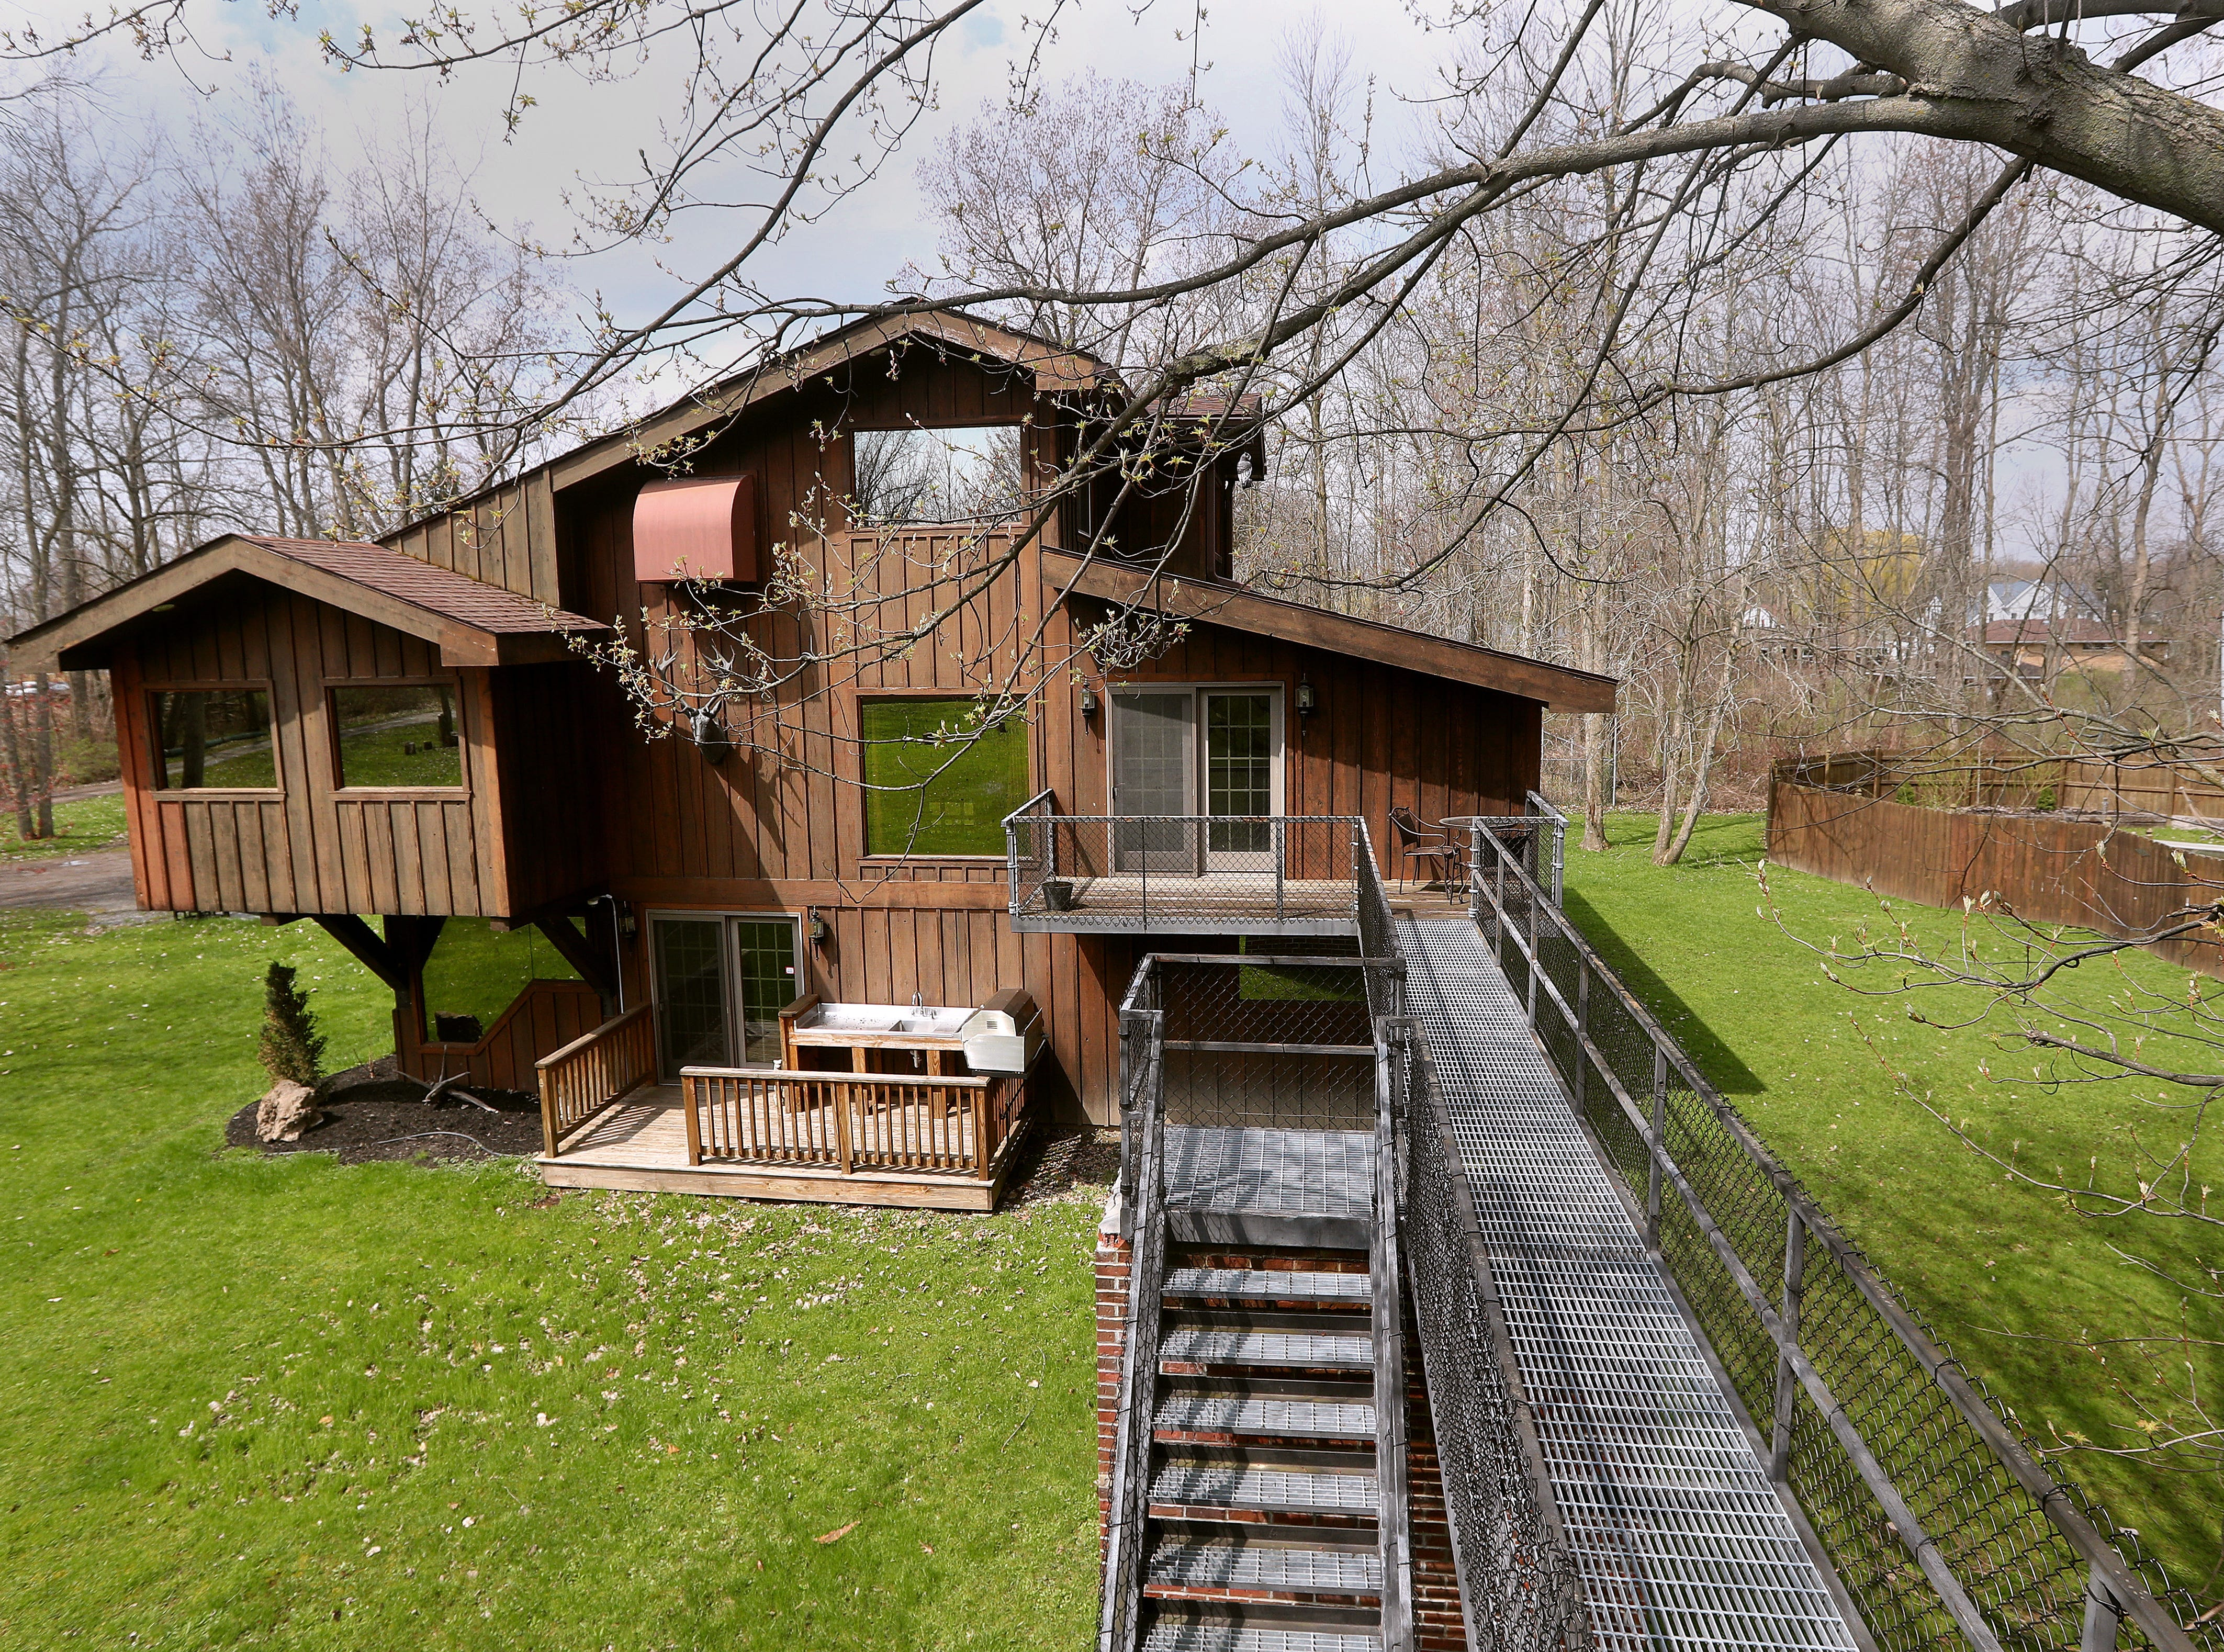 The elevated steel walkway that connects the treehouse to the main house.